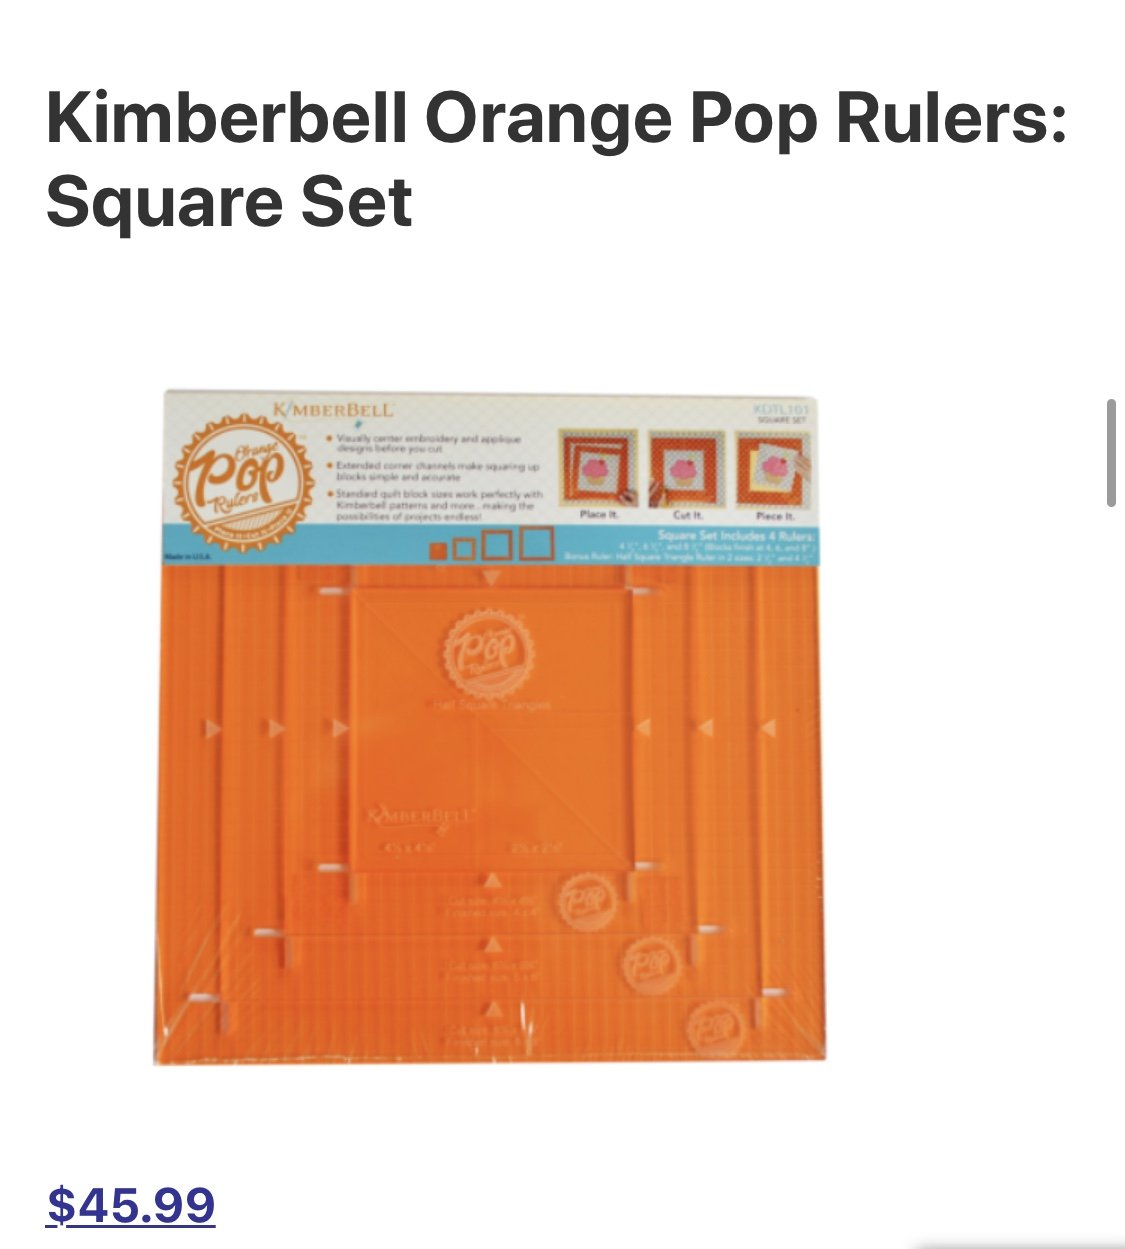 Kimberbell Orange Pop Rulers: Square Set